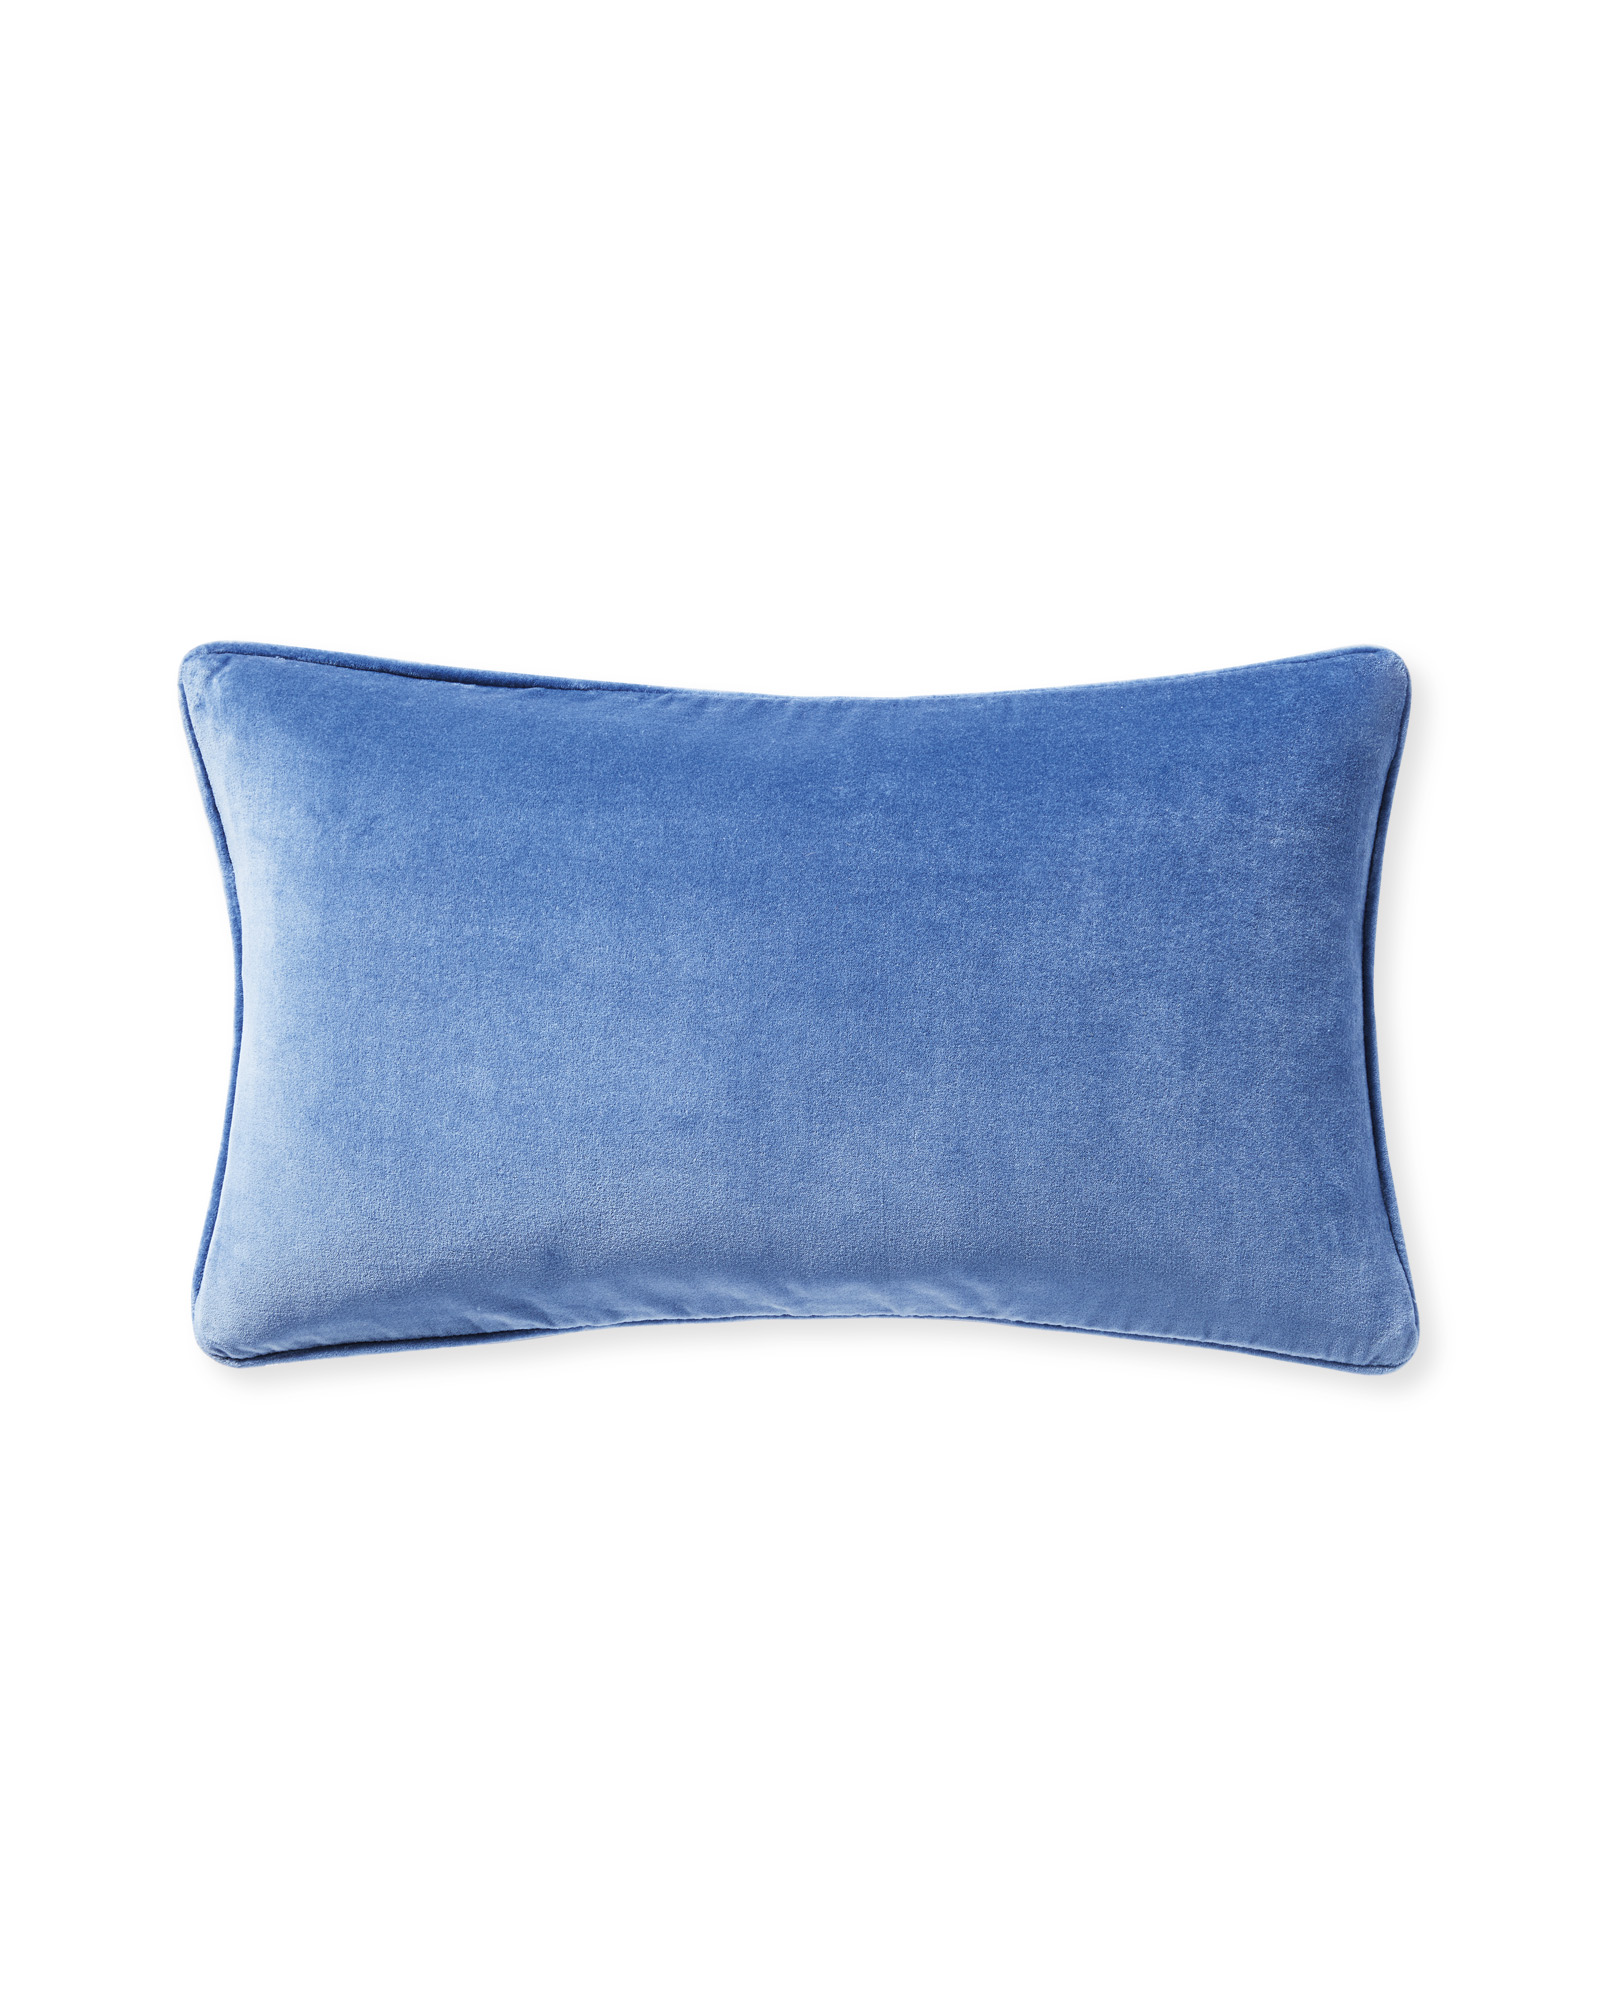 Kingsbury Pillow Cover, French Blue